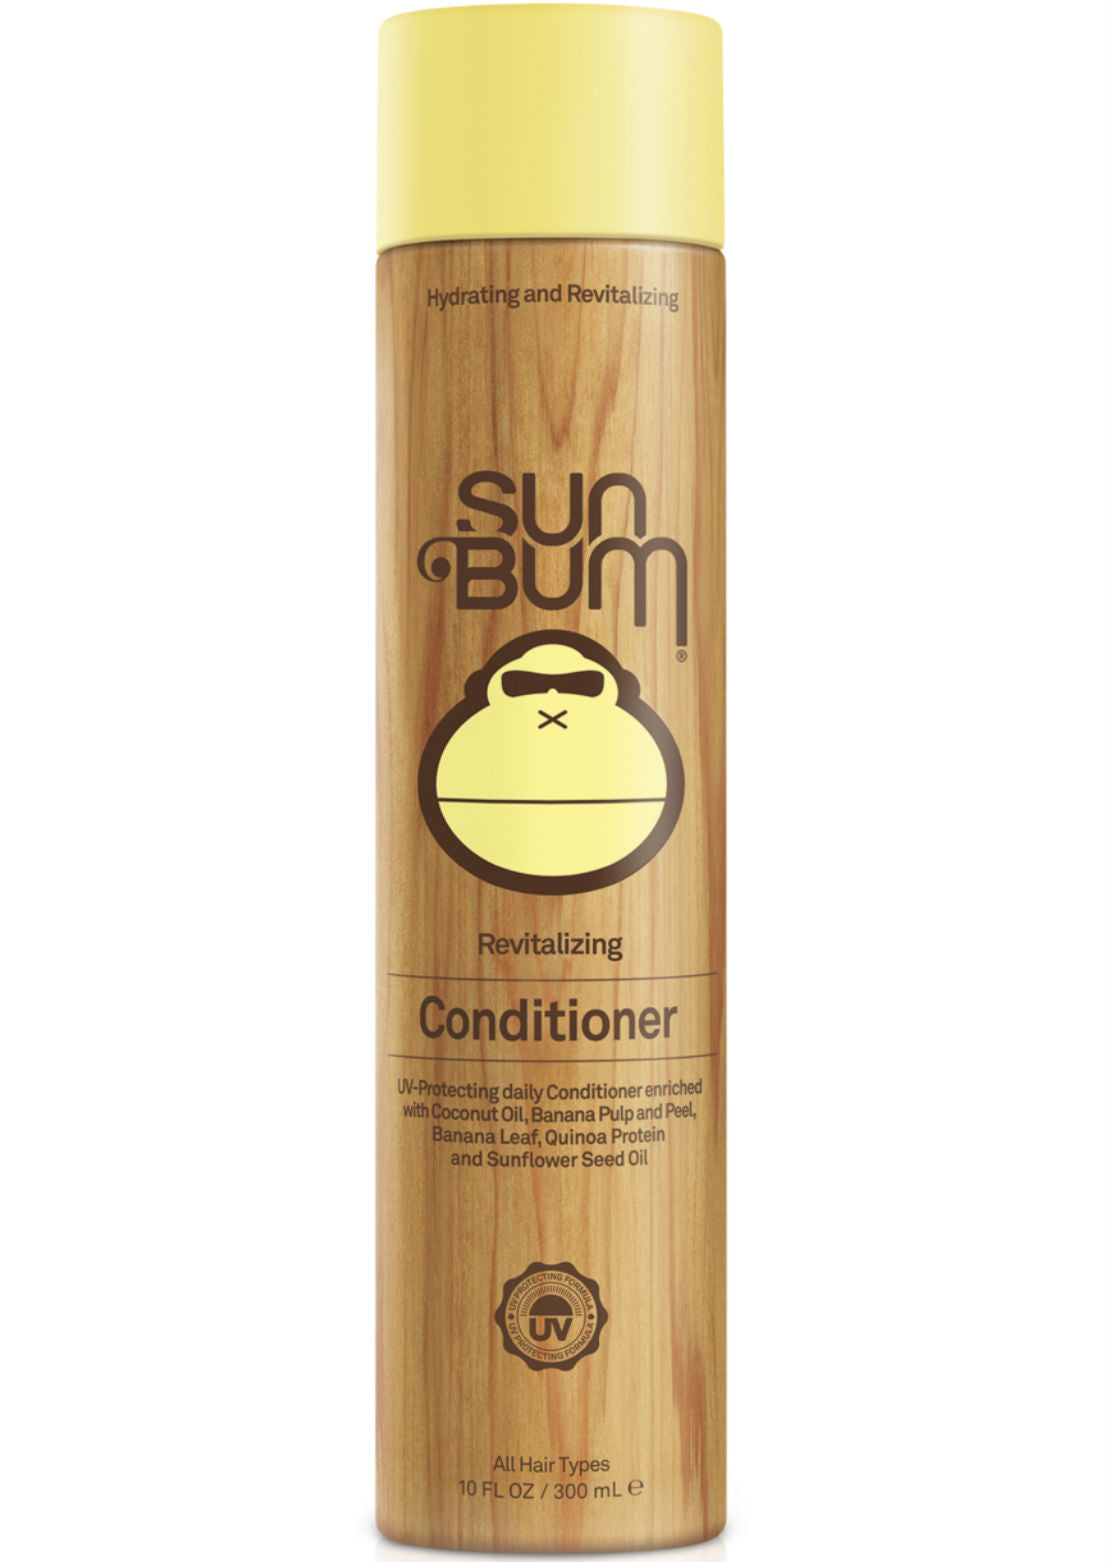 Sun Bum Hair Care Conditoner